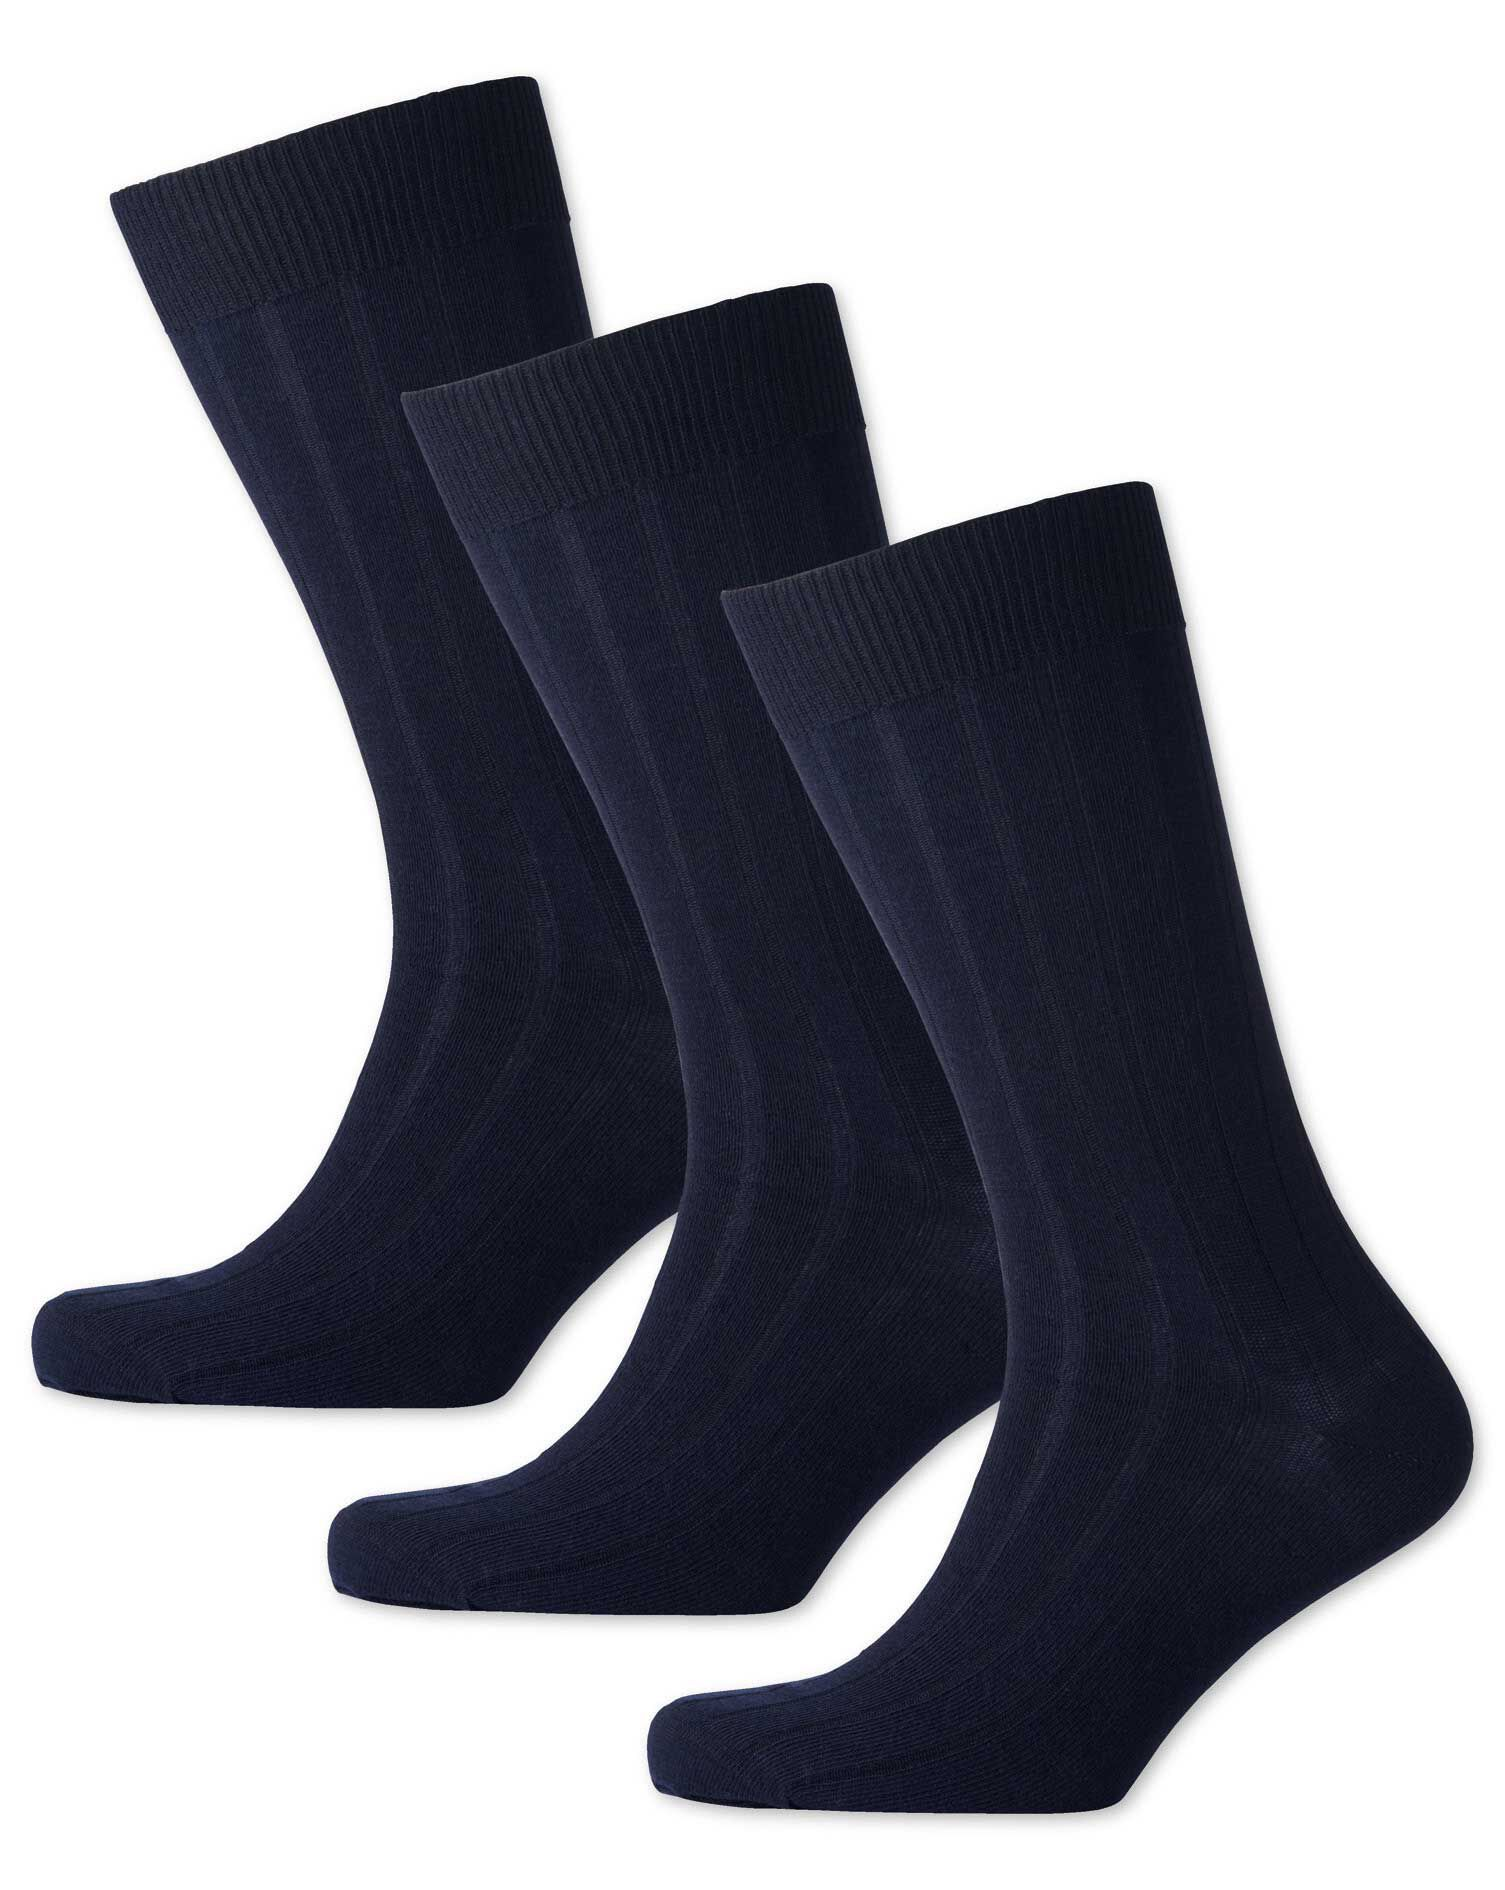 Navy Wool Rich 3 Pack Socks Size Large by Charles Tyrwhitt